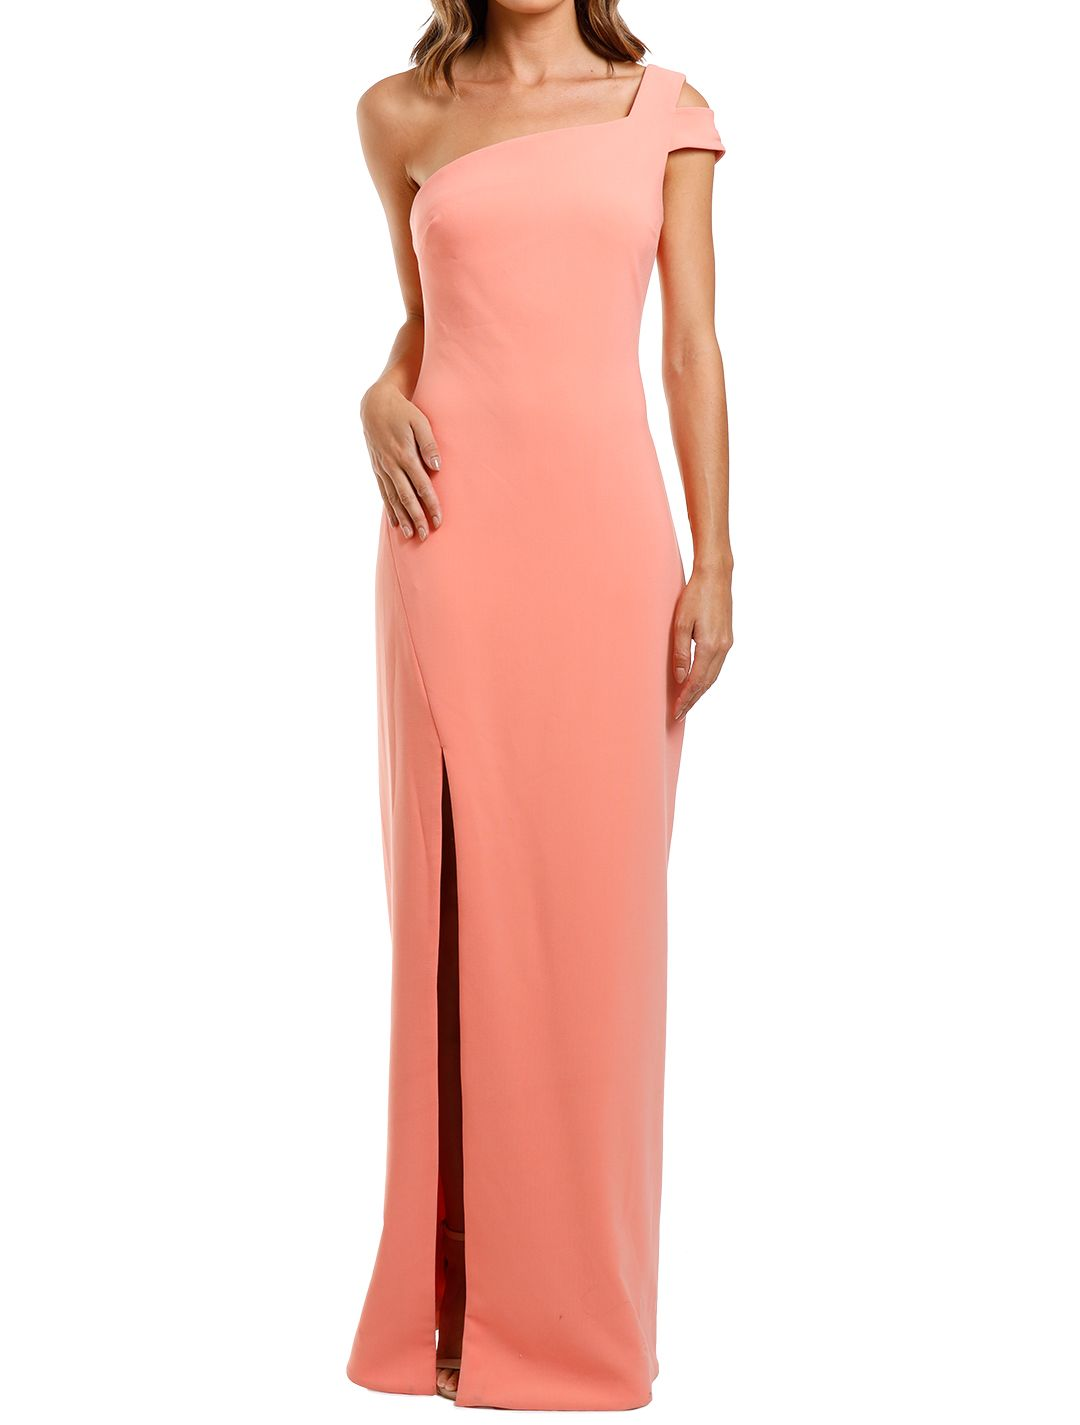 Likely NYC Maxson Gown Apricot